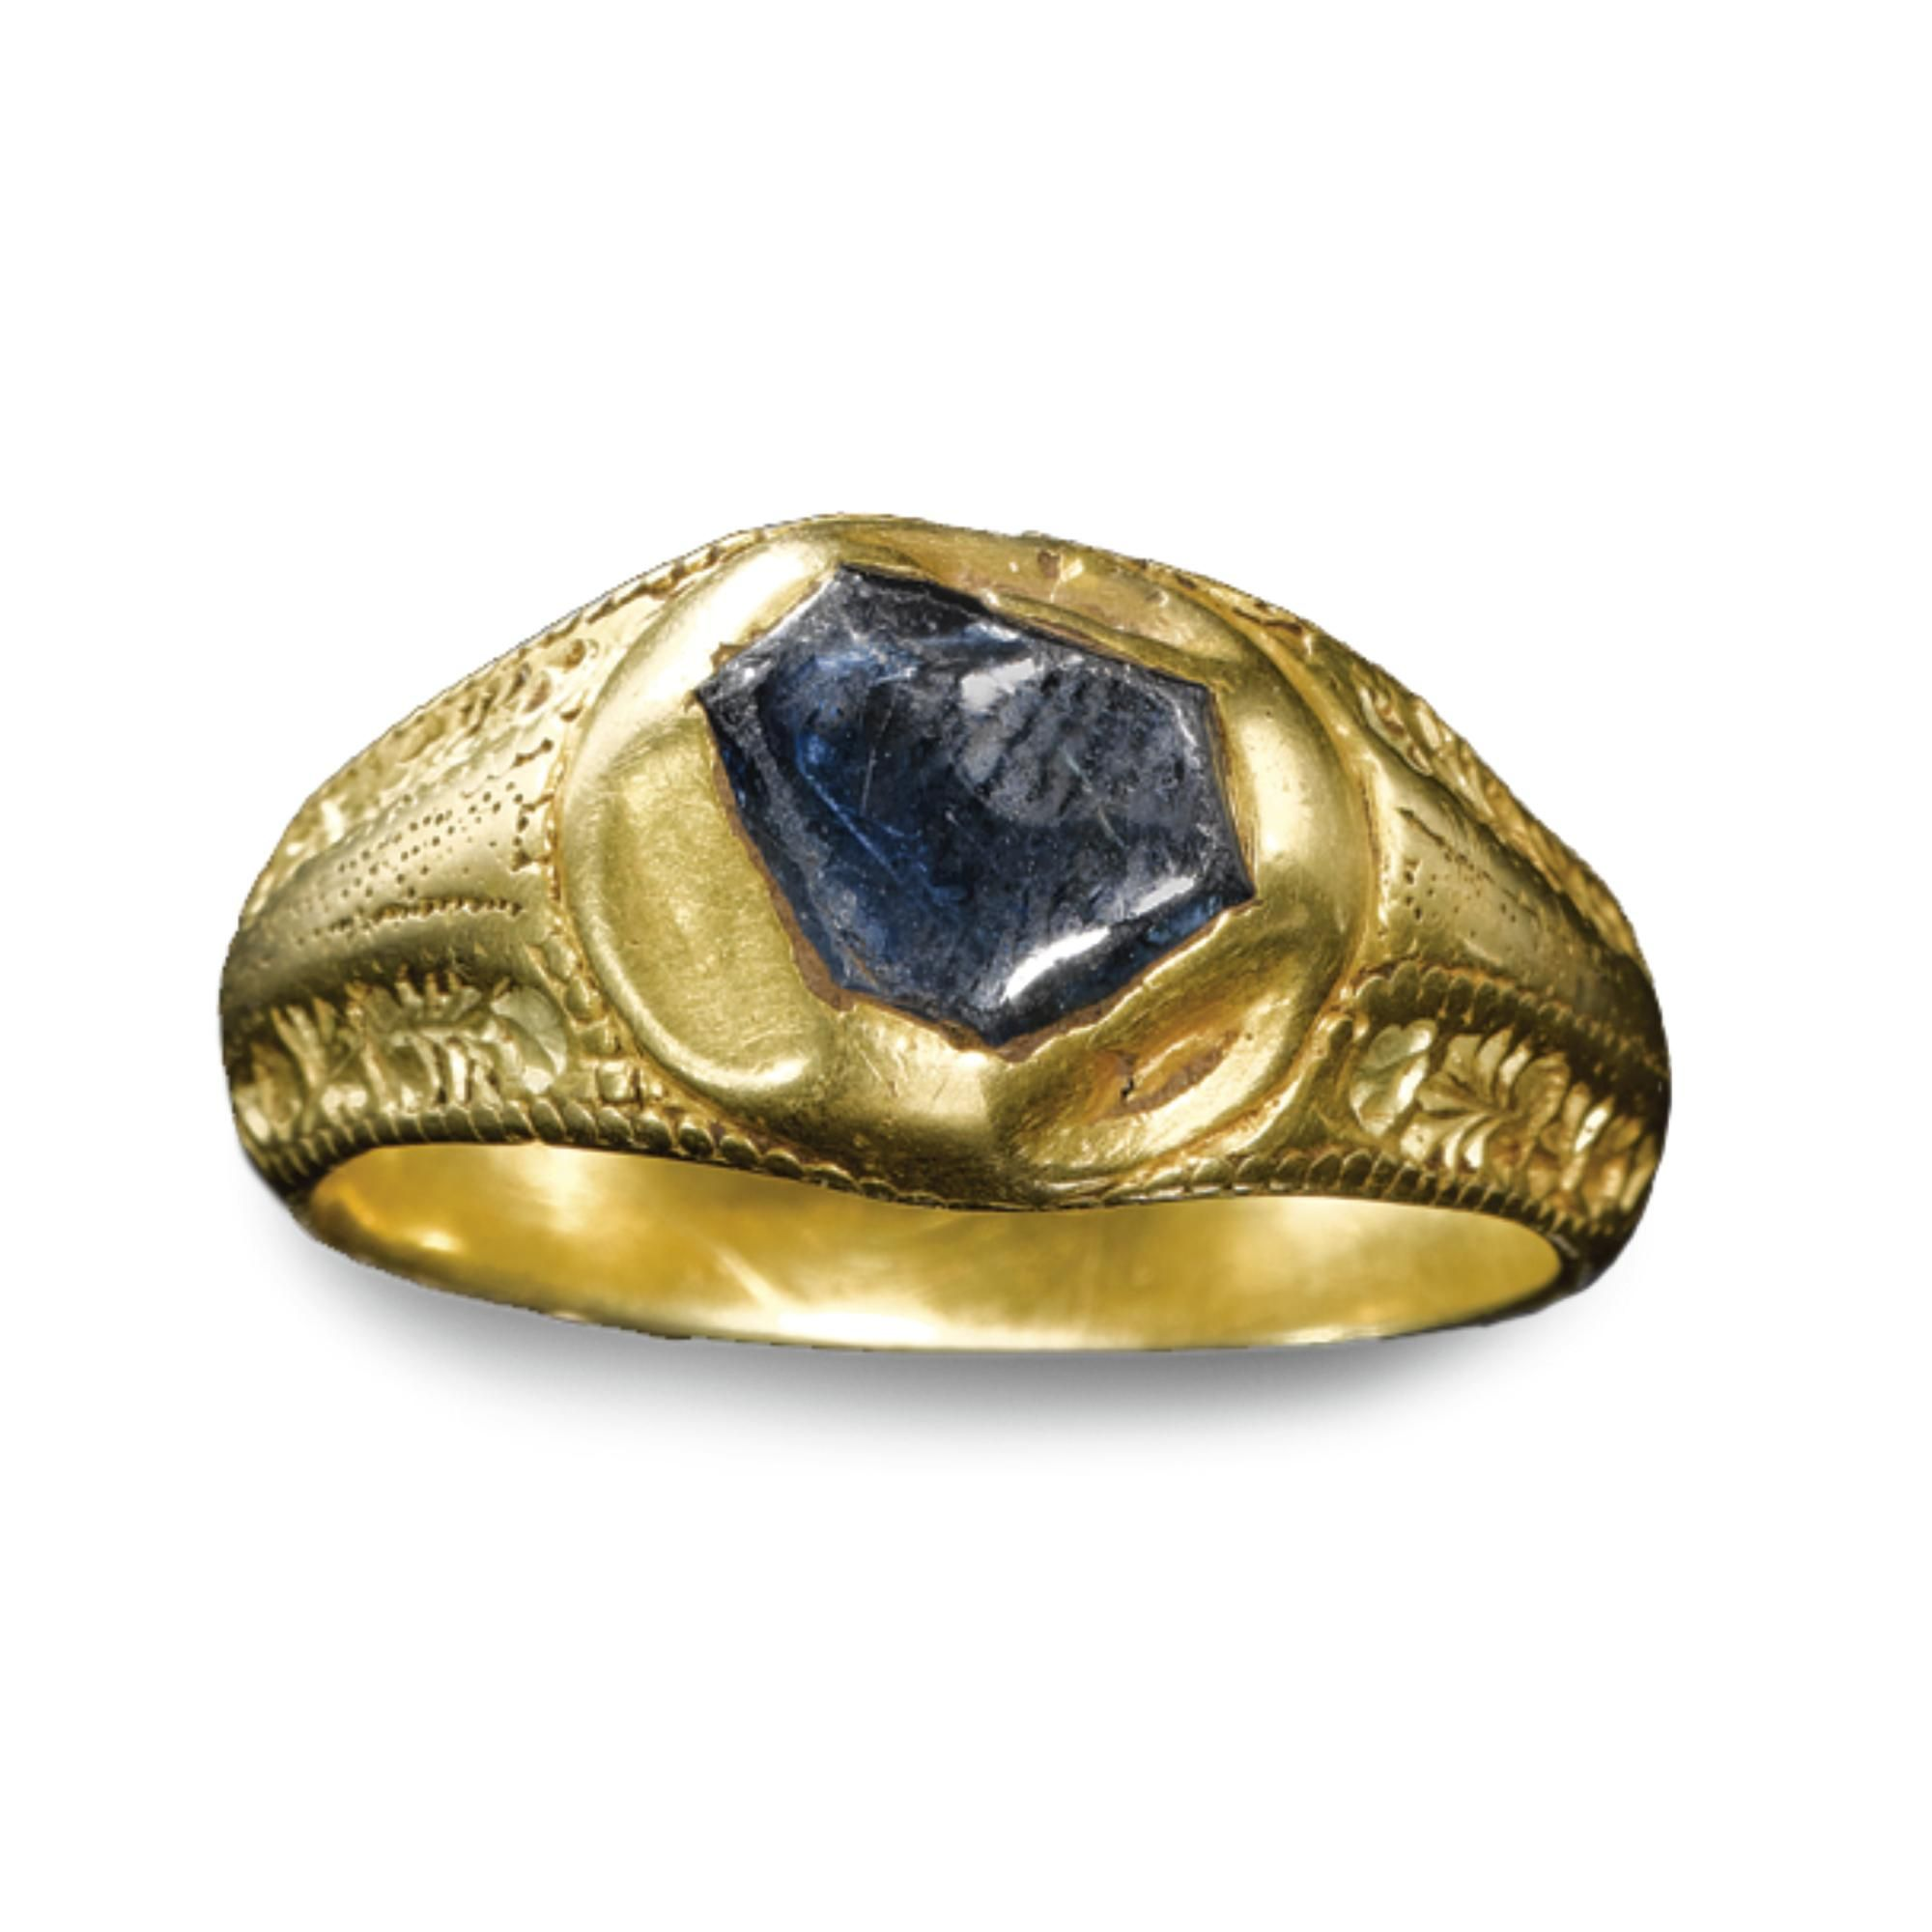 rings cocktail ring pave jewelry gold sapphire sale golden cleef and id arpels at for j master van